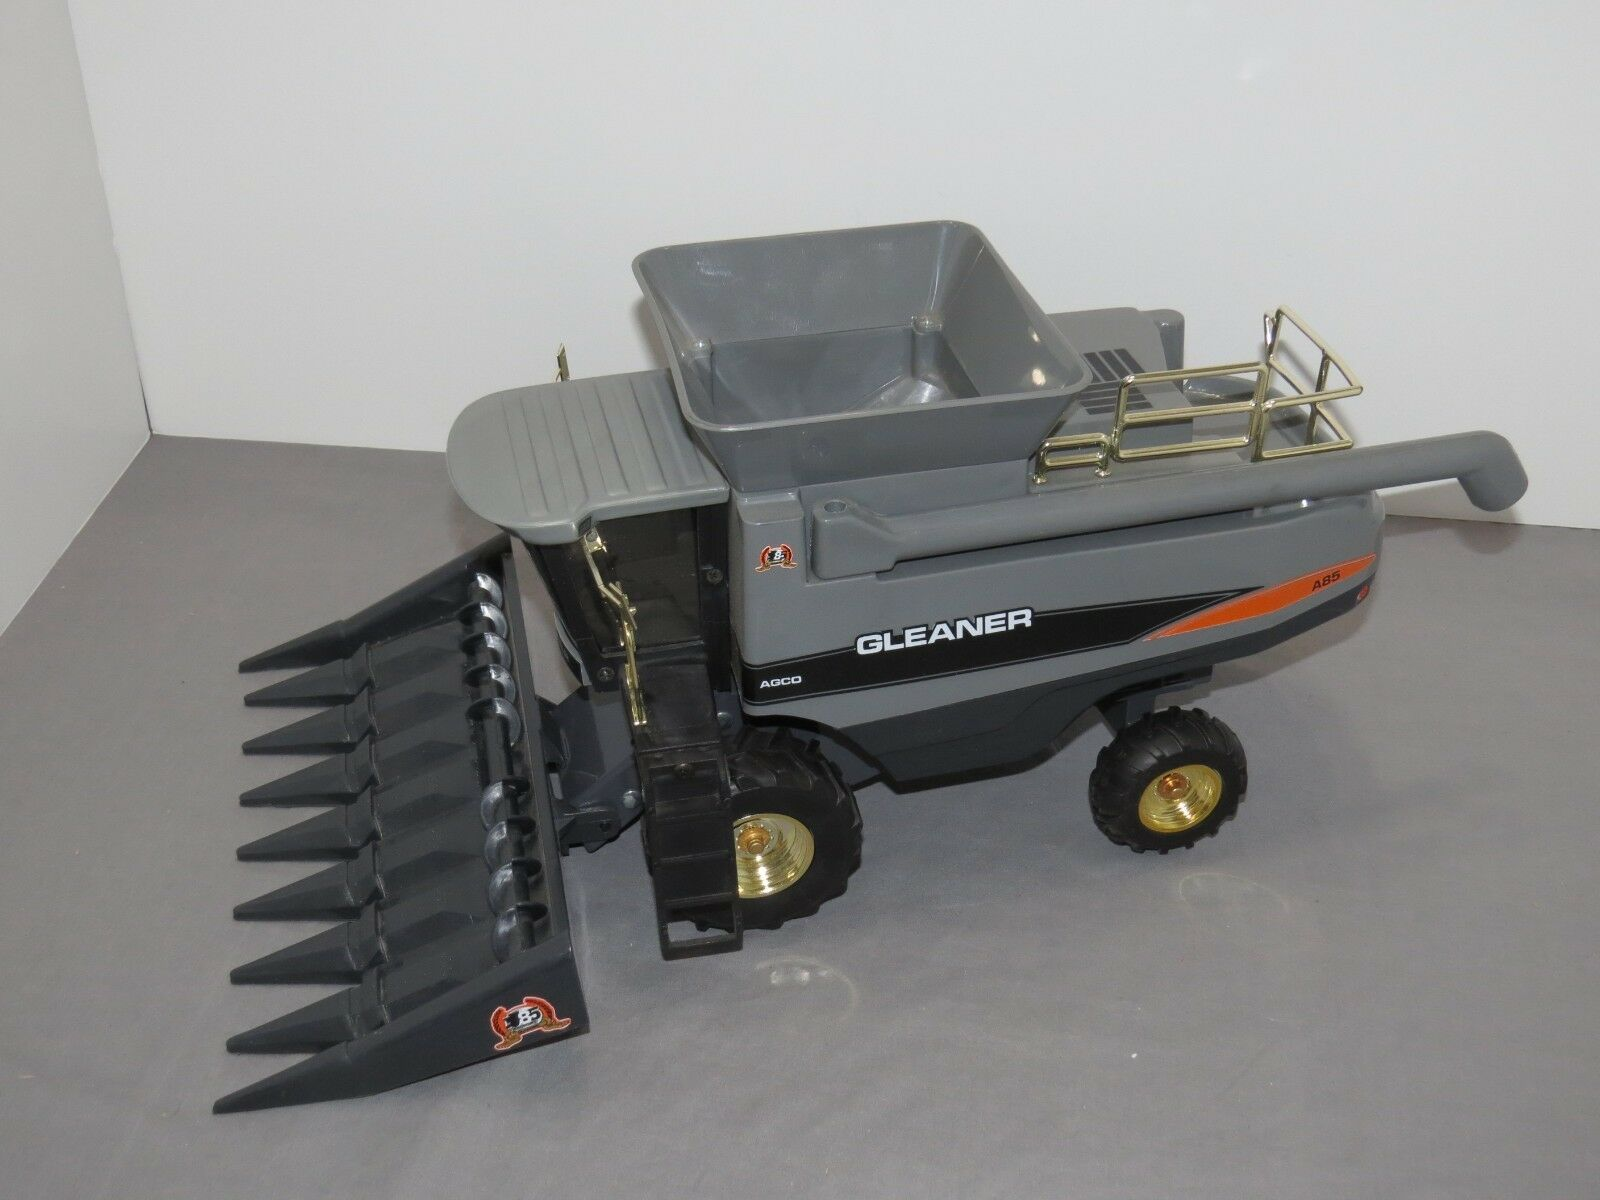 Vintage 1 24 Gleaner A85 Combine 85th Anniversary Edition by Scale Models gold R